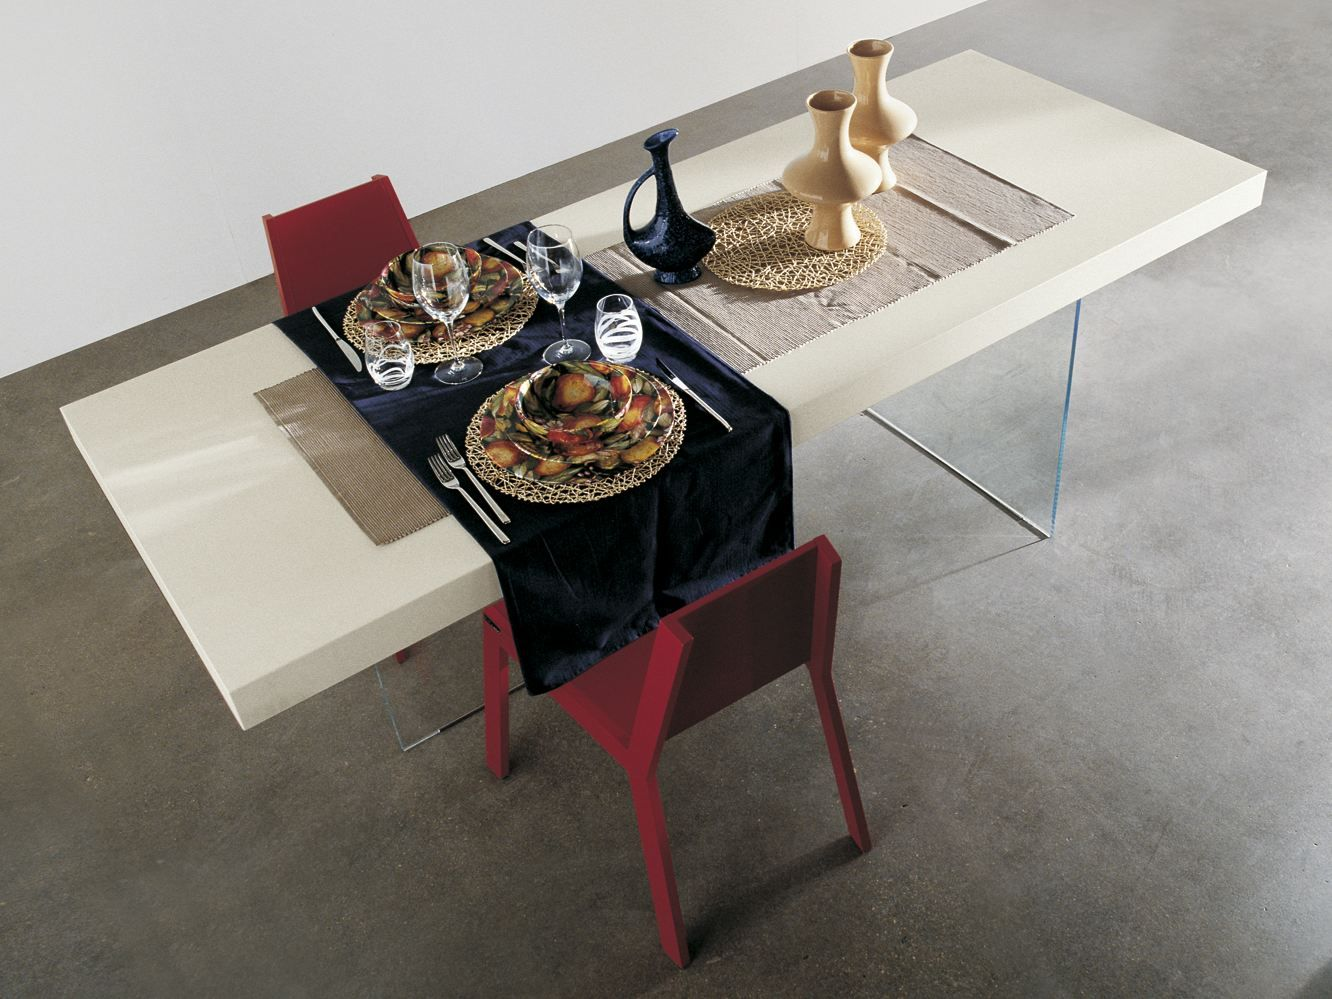 AIR Lacquered table by Lago design Daniele Lago | dining table ...